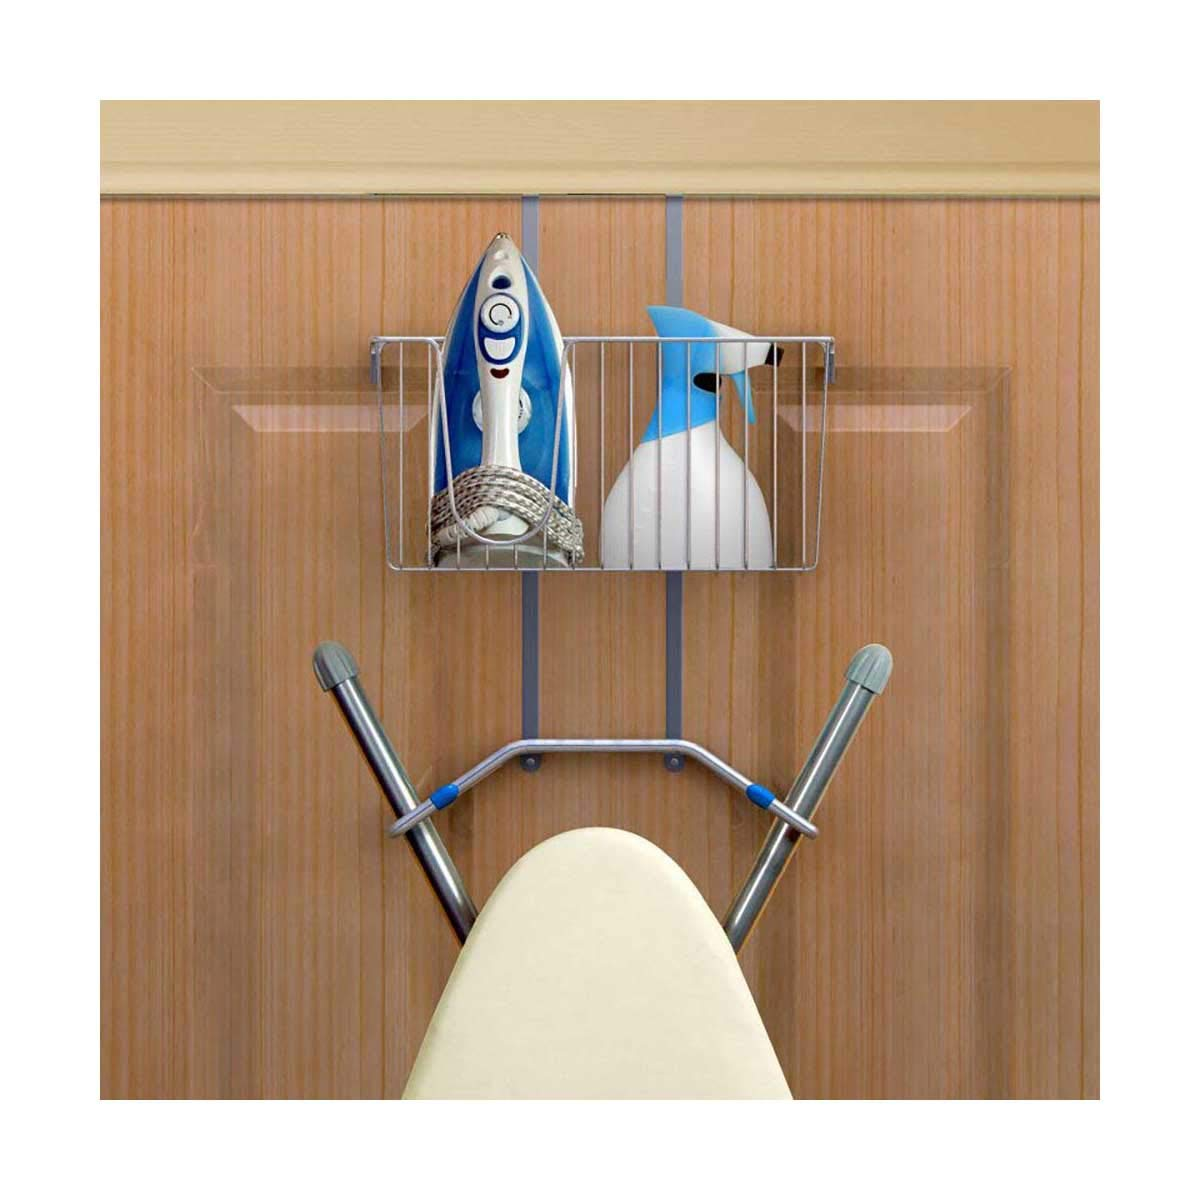 Ironing Board Hanger Wall Mounted Or Over Door Iron Holder - 3in1 Storage System - Chrome Finish BMS